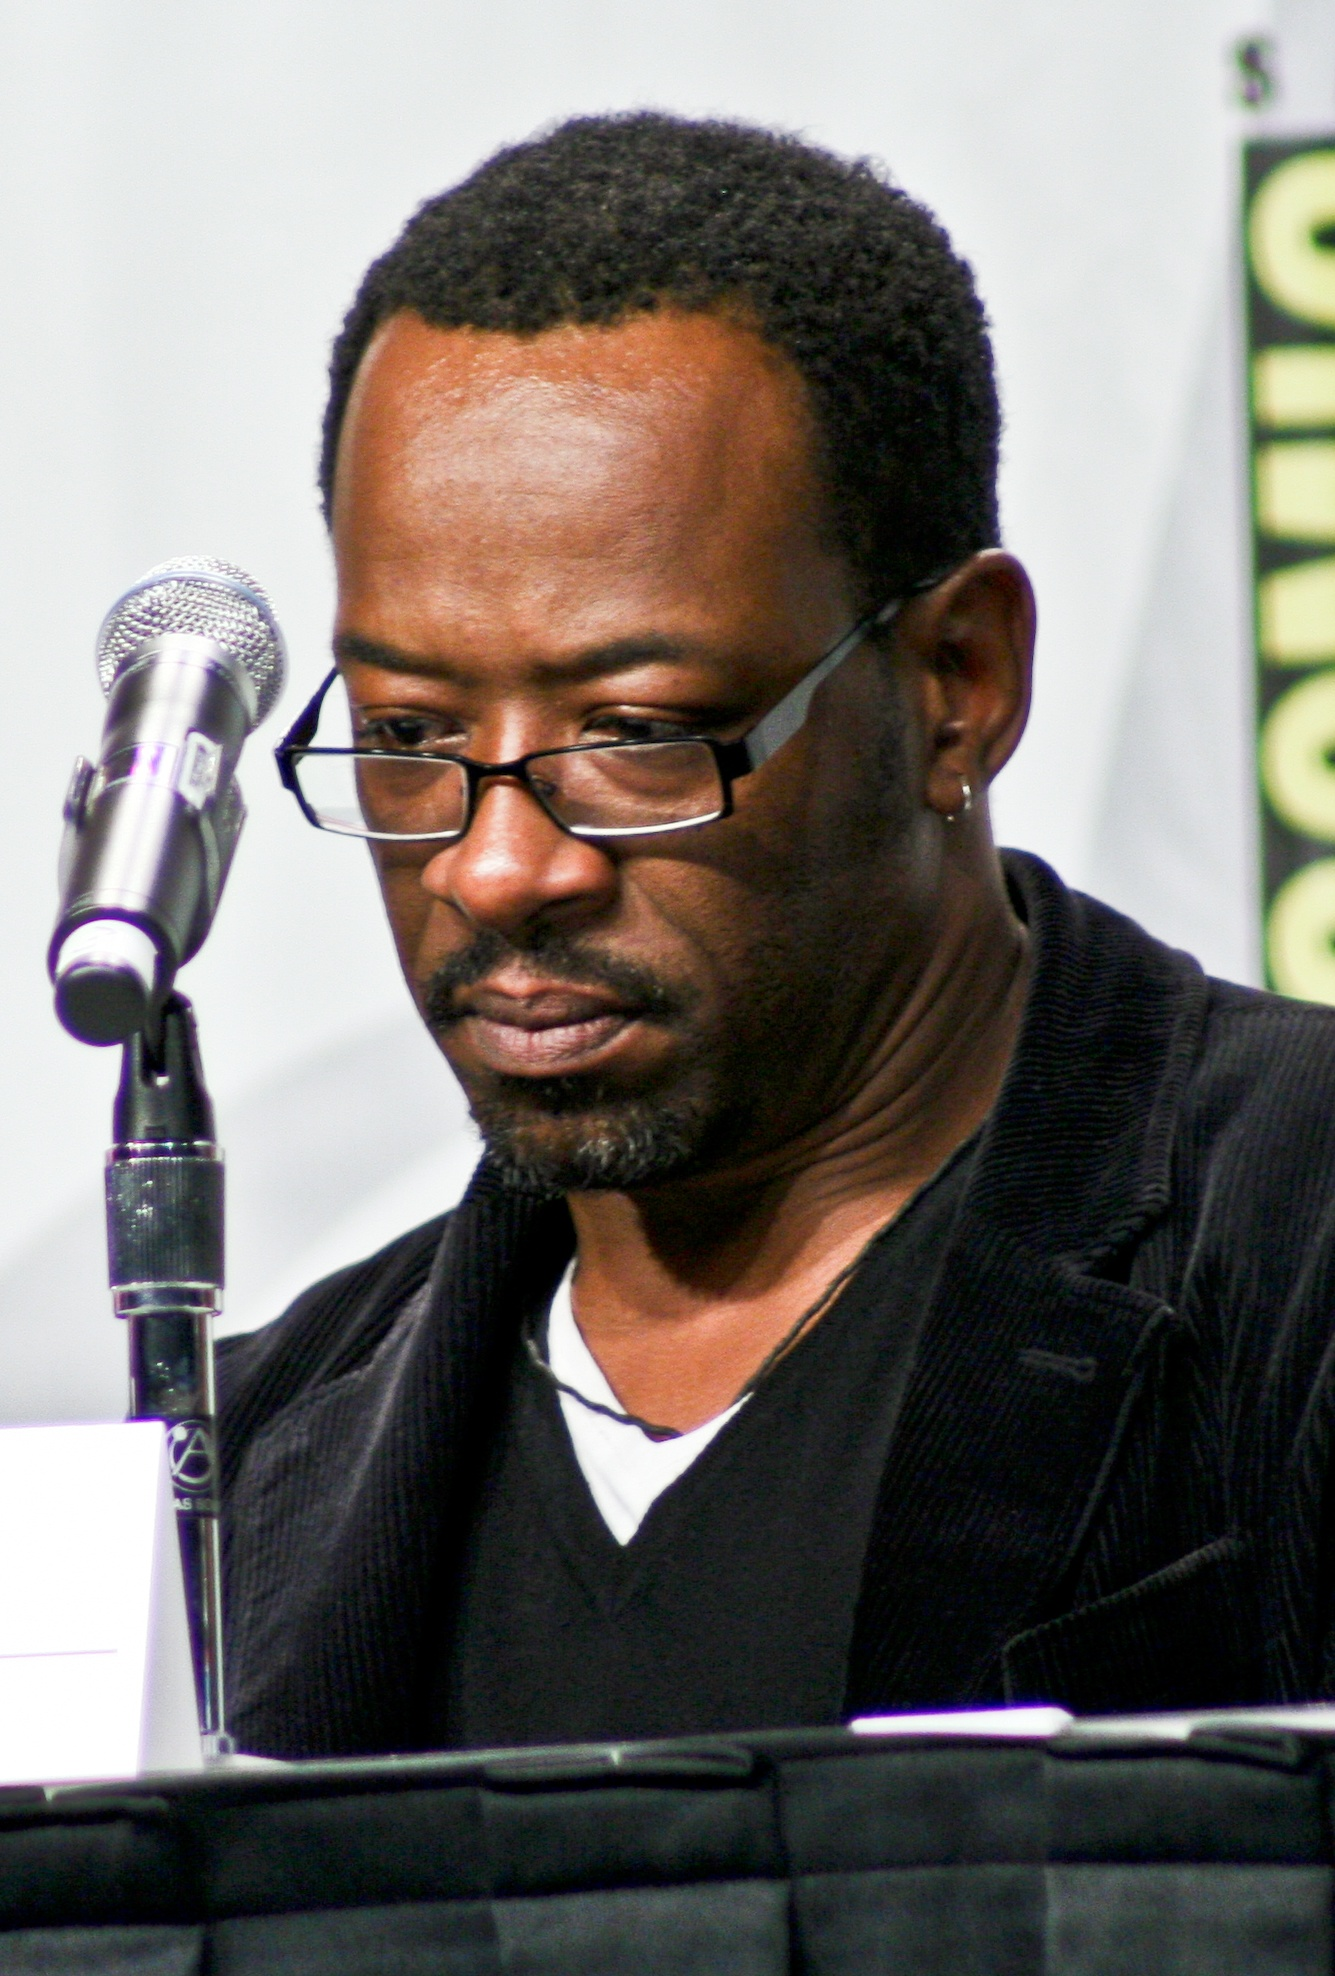 Lennie James at the San Diego Comic-Con in 2008.